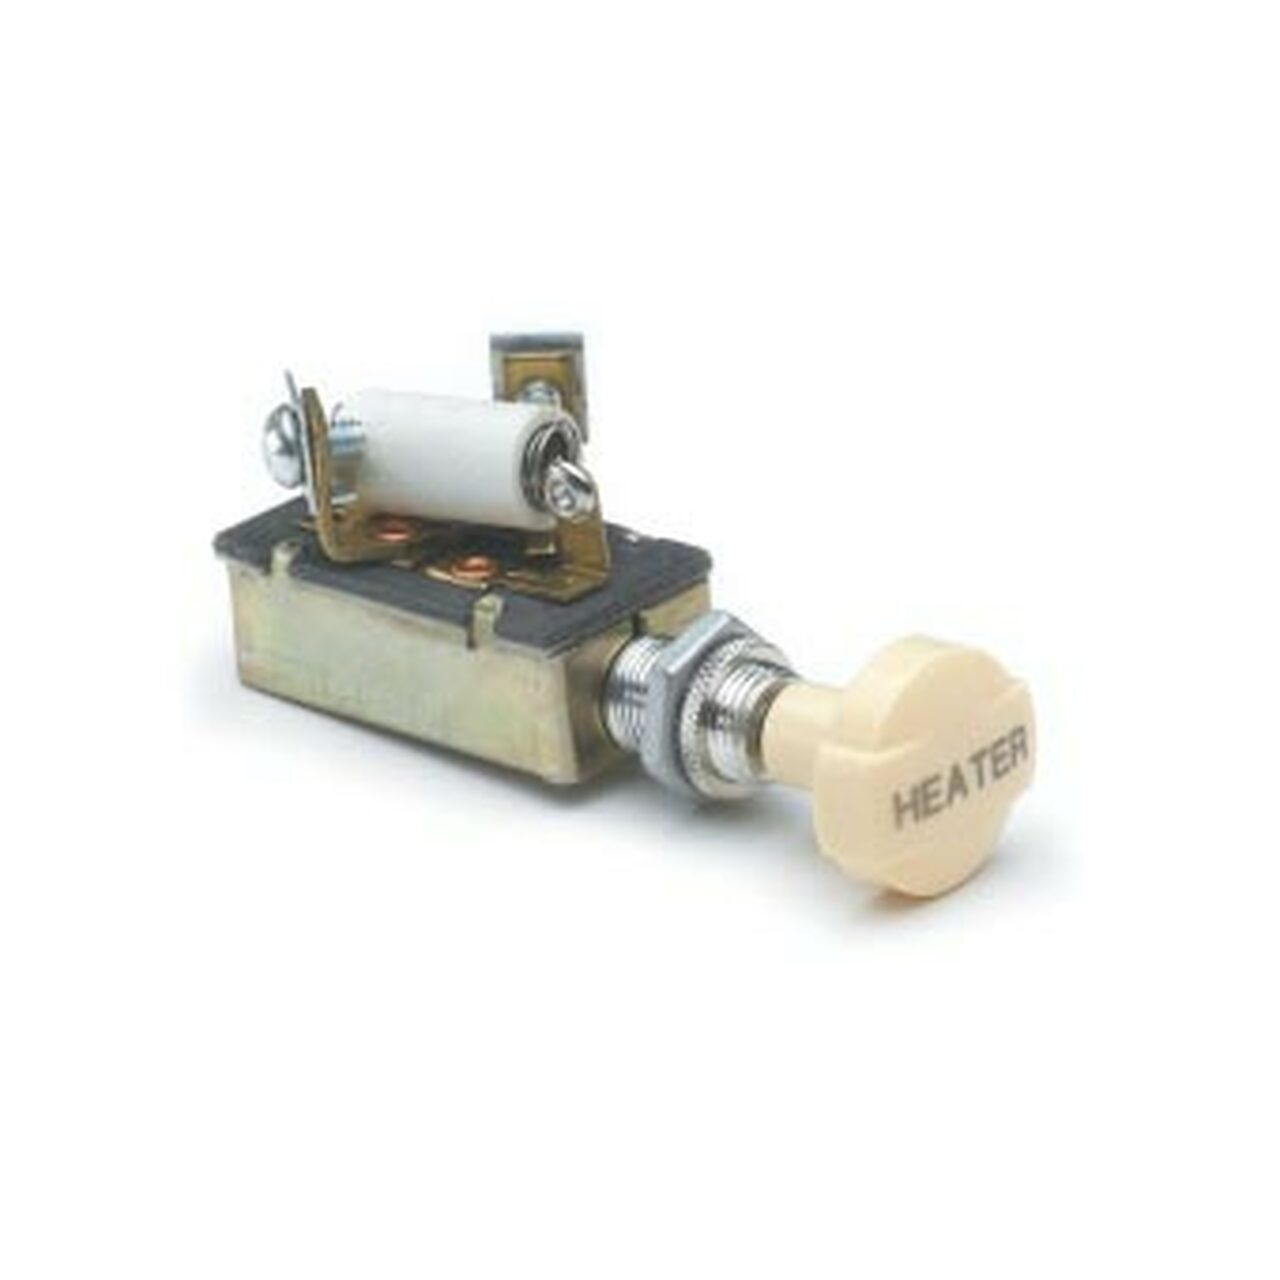 PUSH/PULL HEATER SWITCH 3 POSITION